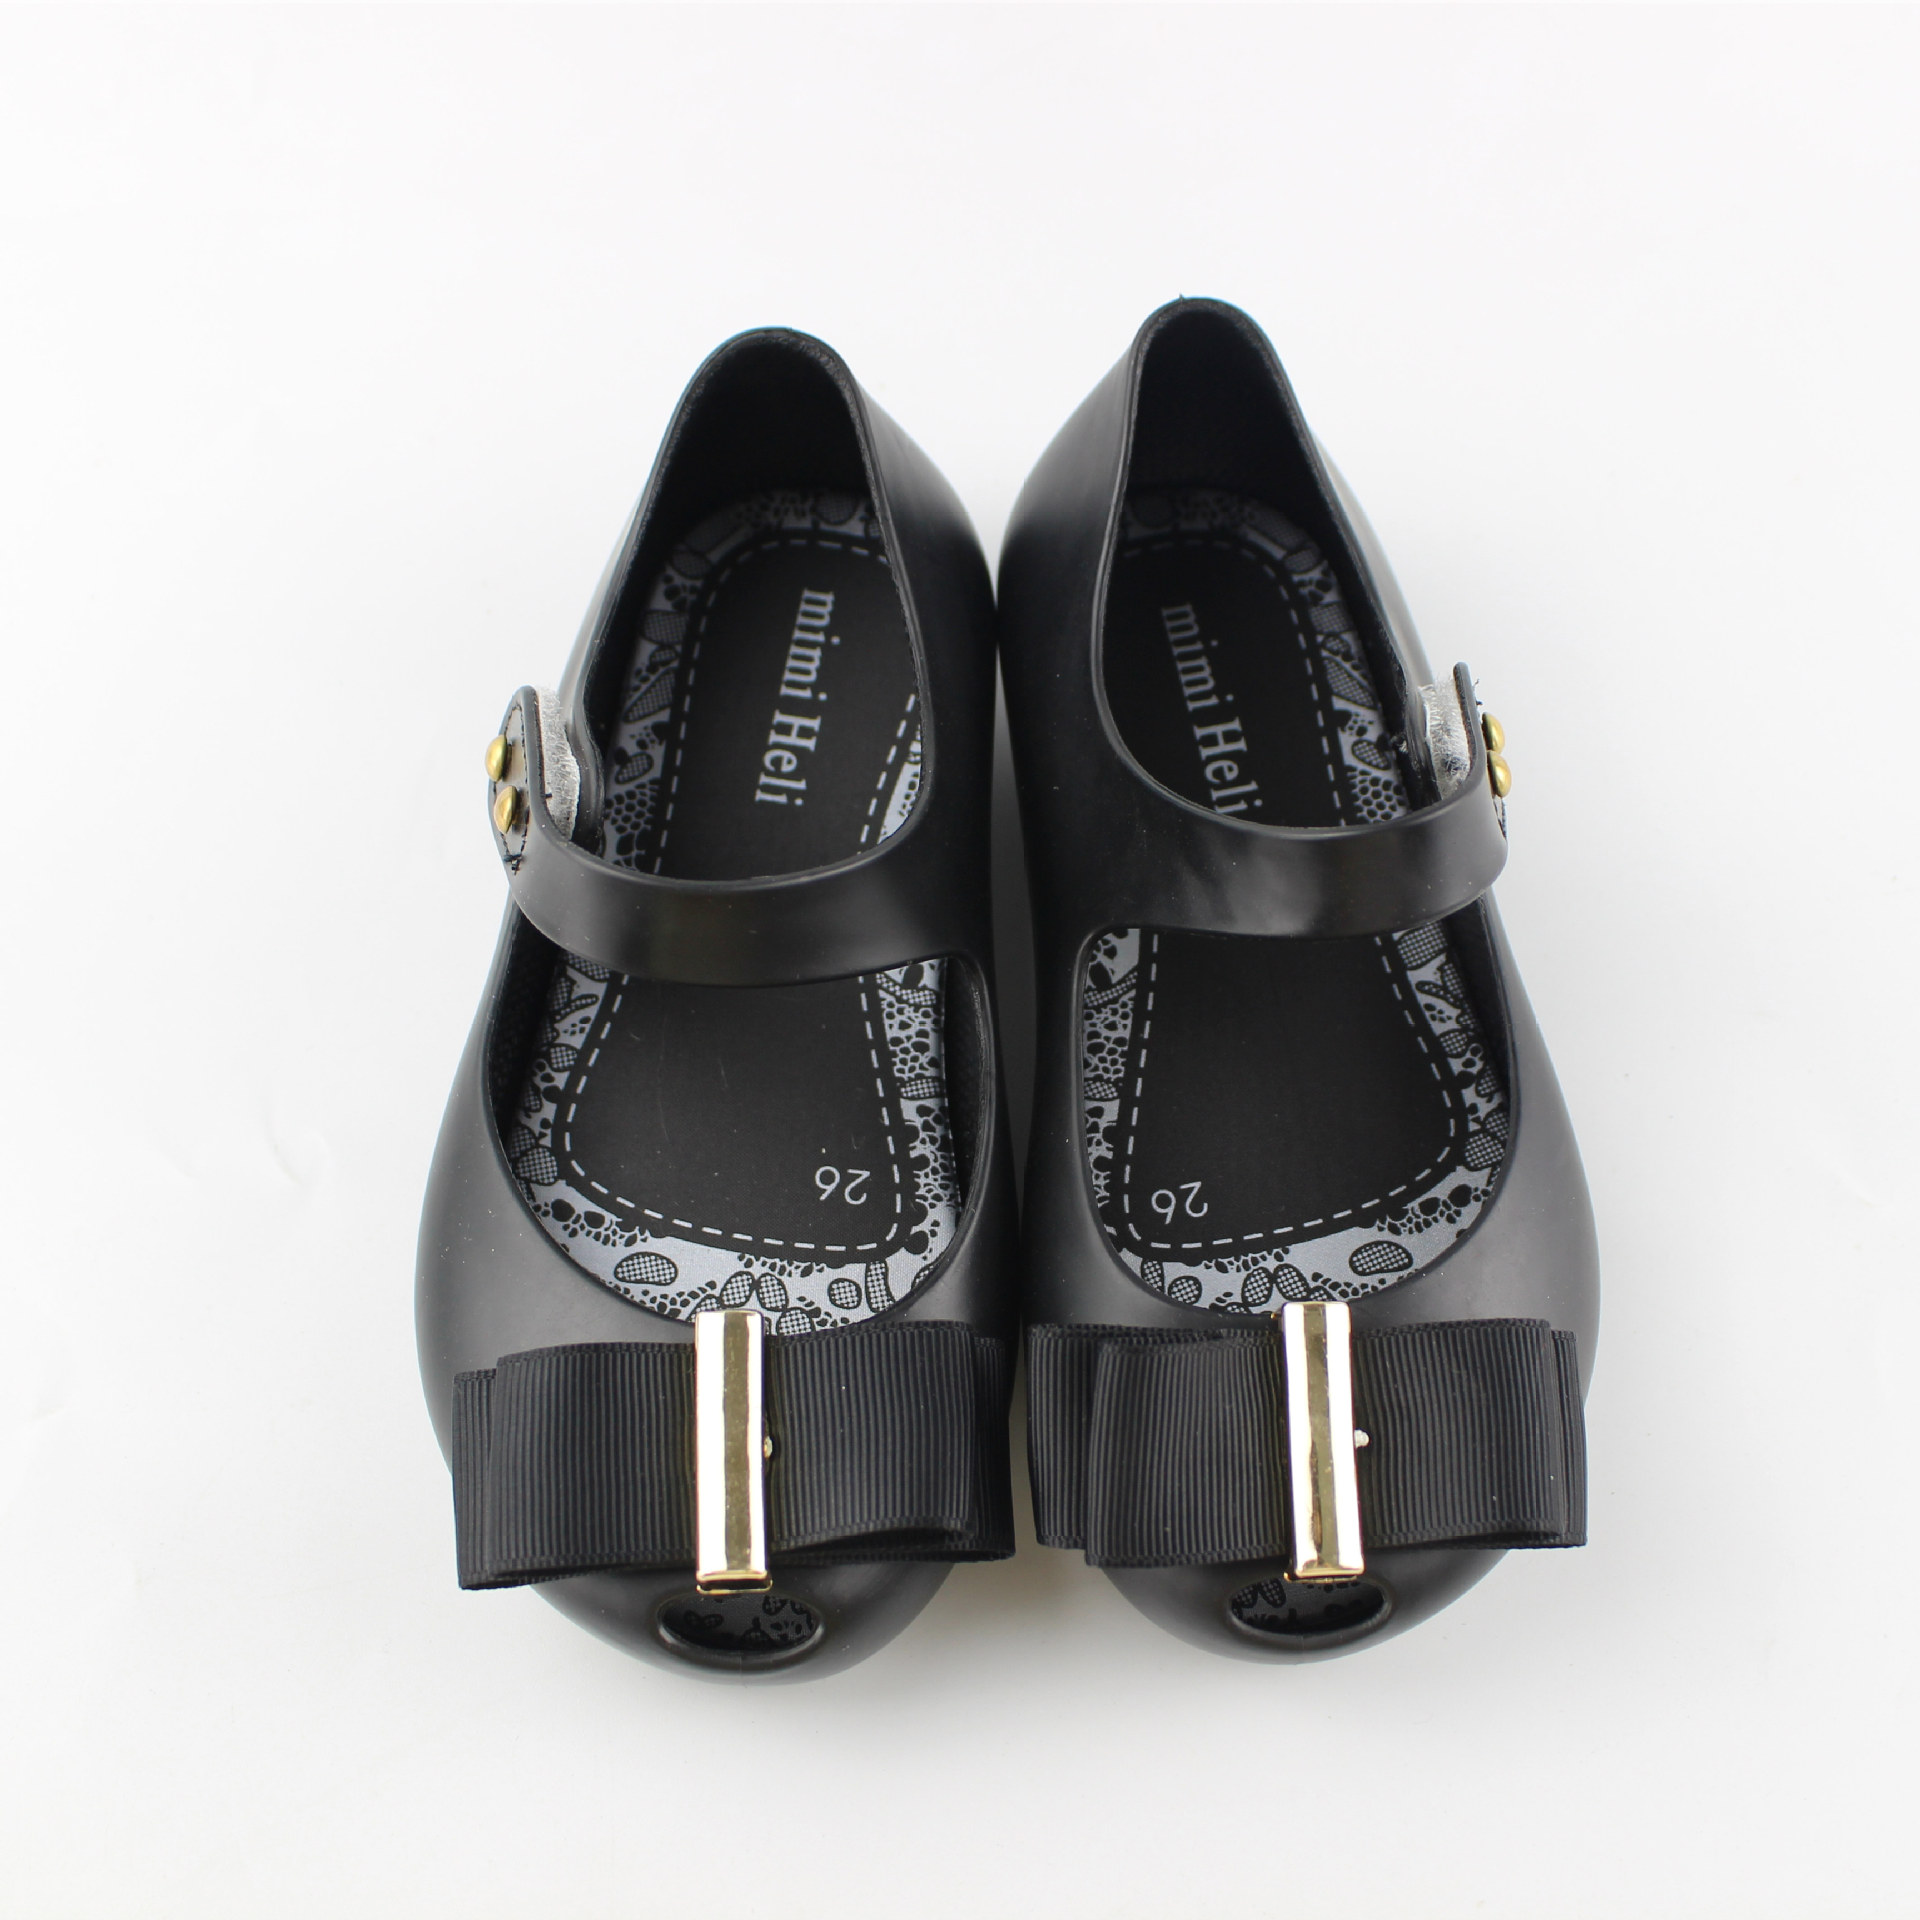 Black sandals baby girl - Mini Melissa Bow Baby Girl Sandals 2017 New Jelly Sandals Gold Buckle Cloth Bow Princess Shoes